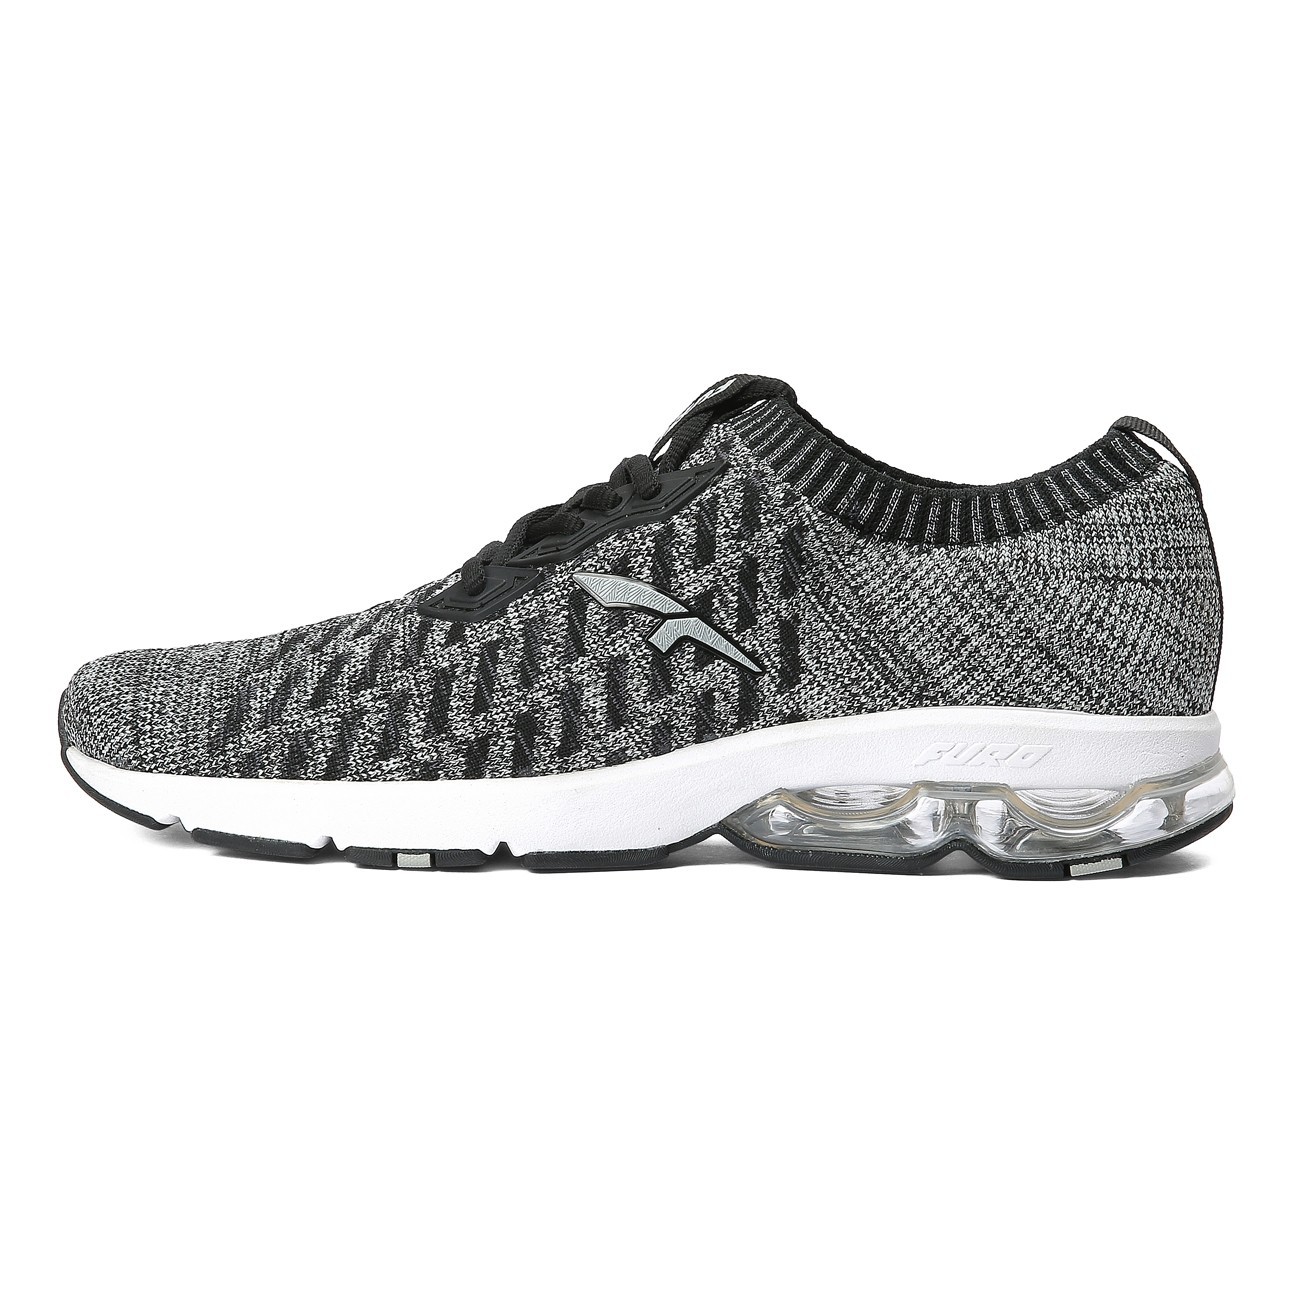 FURO R1032 | Running Shoes for Men